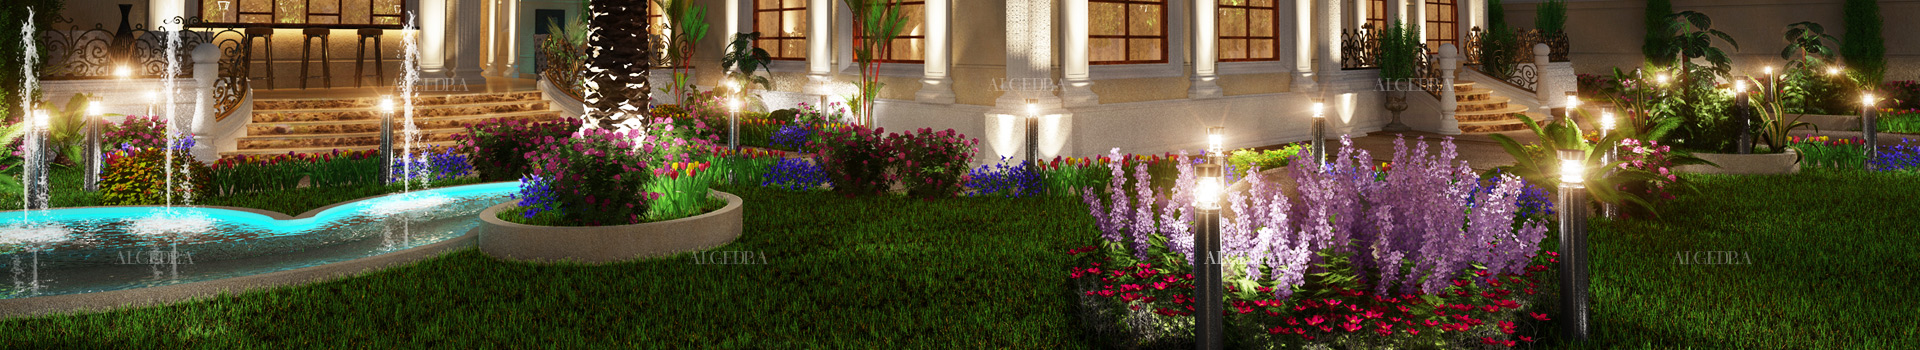 Interior landscape design landscaping design company for Manapat interior landscape designs